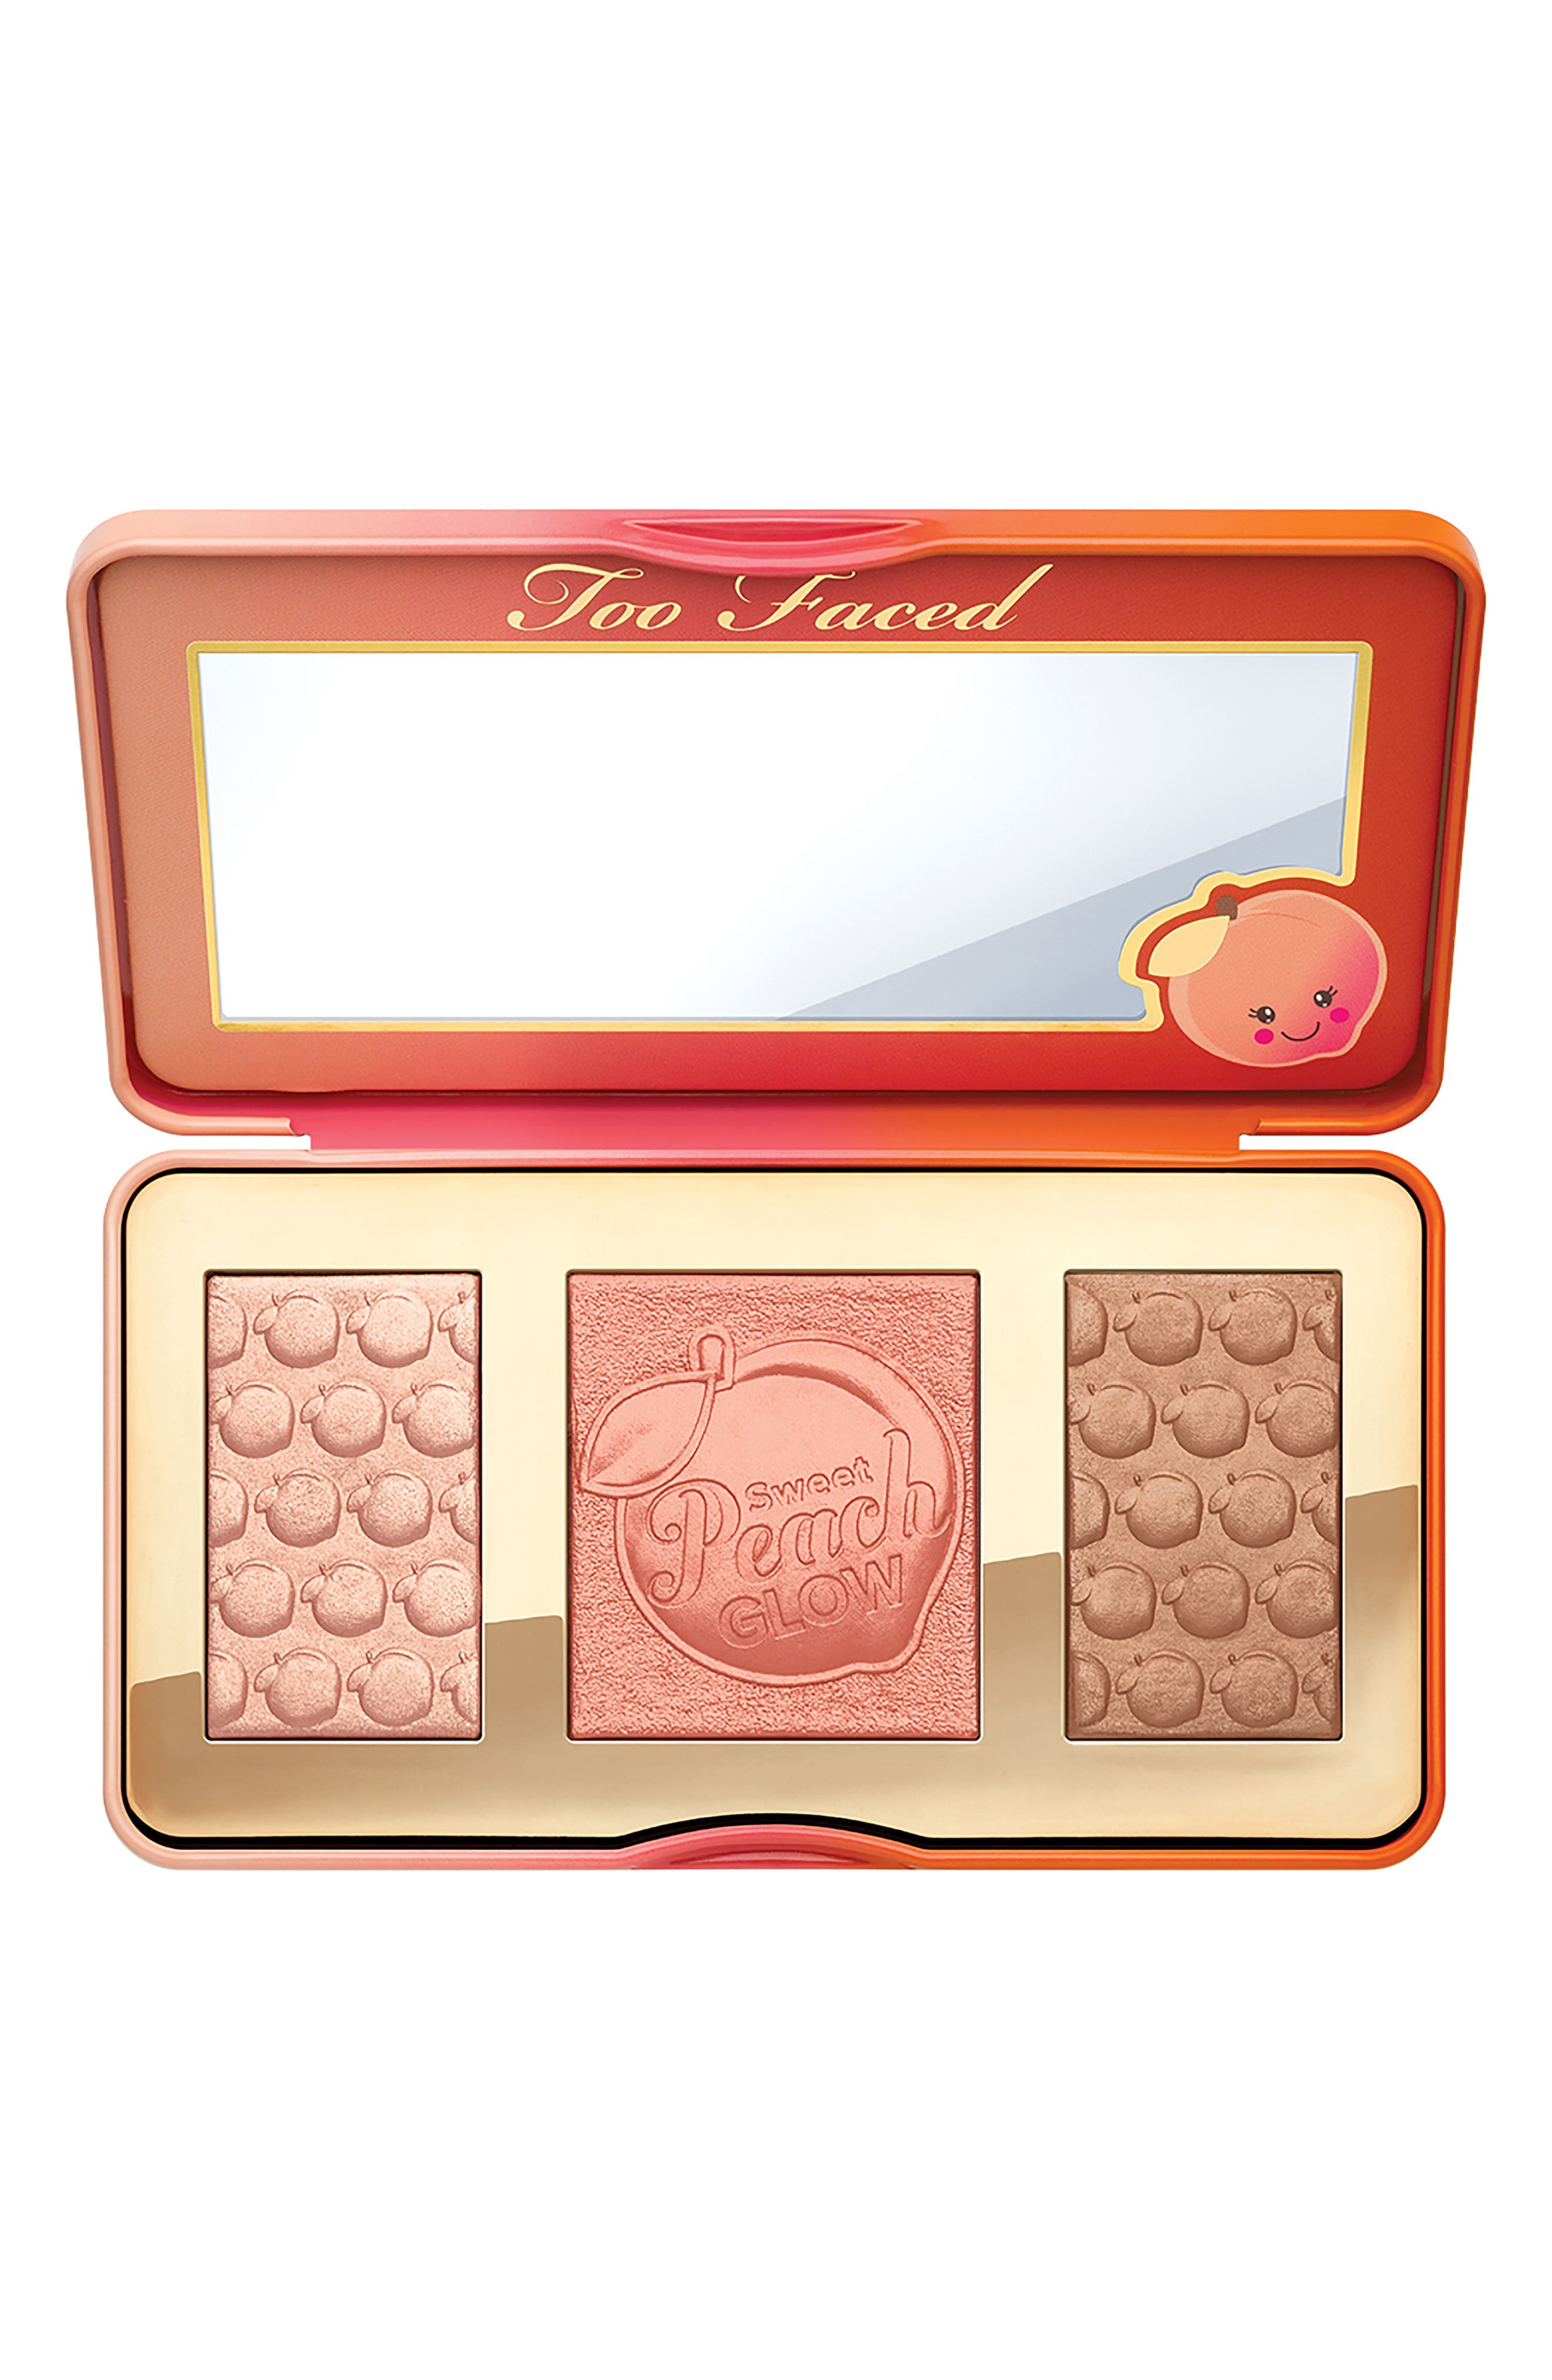 Sweet Peach Glow Highlighting Palette,                             Alternate thumbnail 2, color,                             NO COLOR